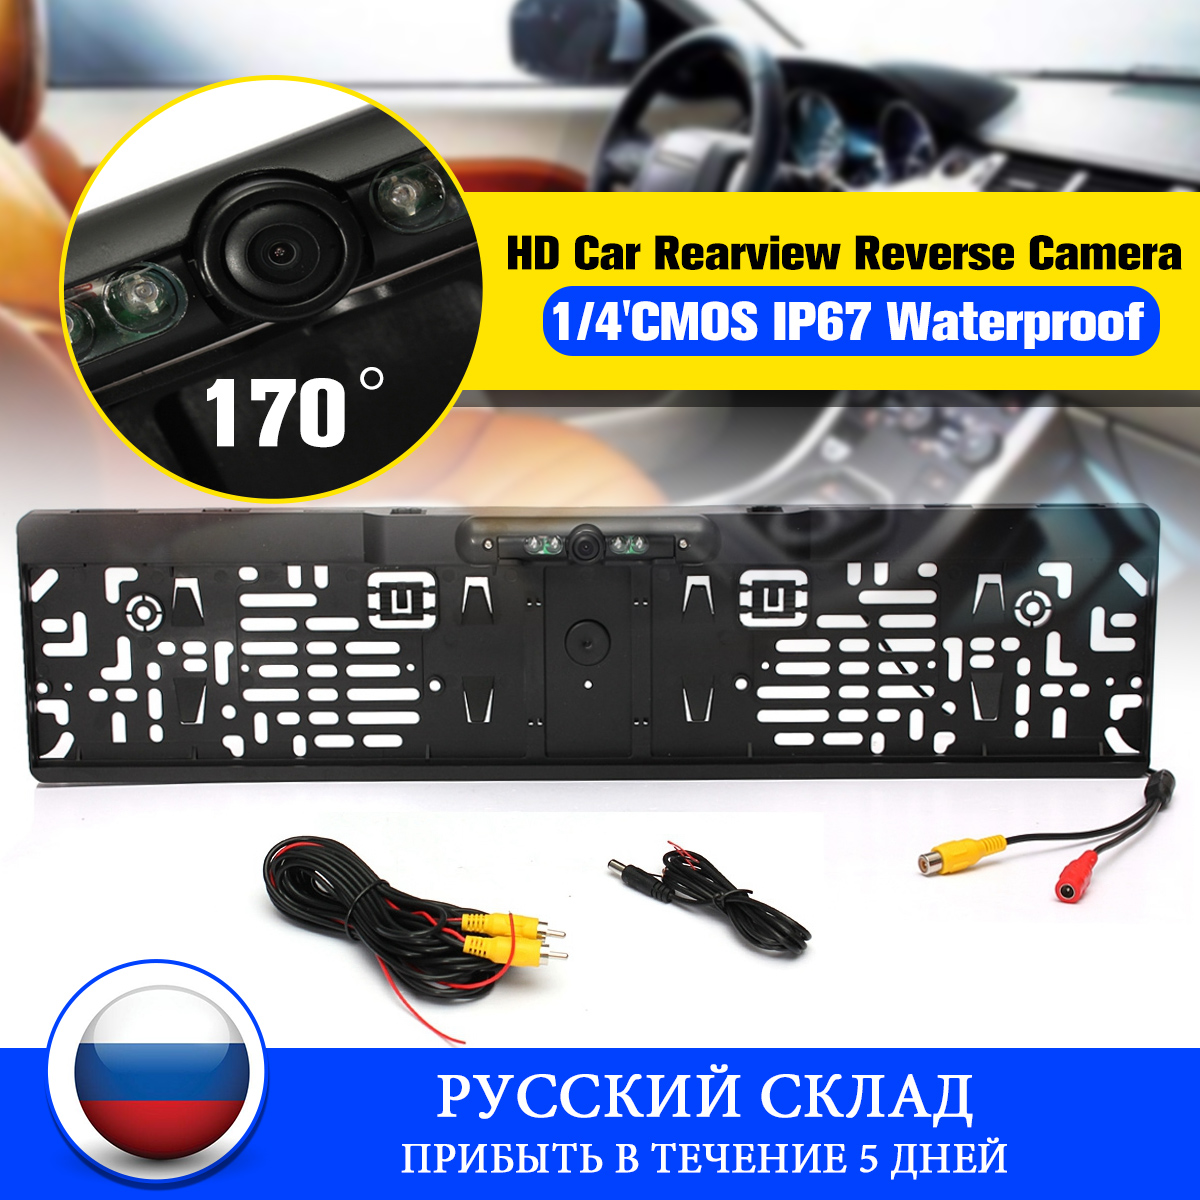 Waterproof European License Plate Frame Rear View Camera Auto Car Reverse Backup Parking Rearview 170 Degree Camera Night Vision